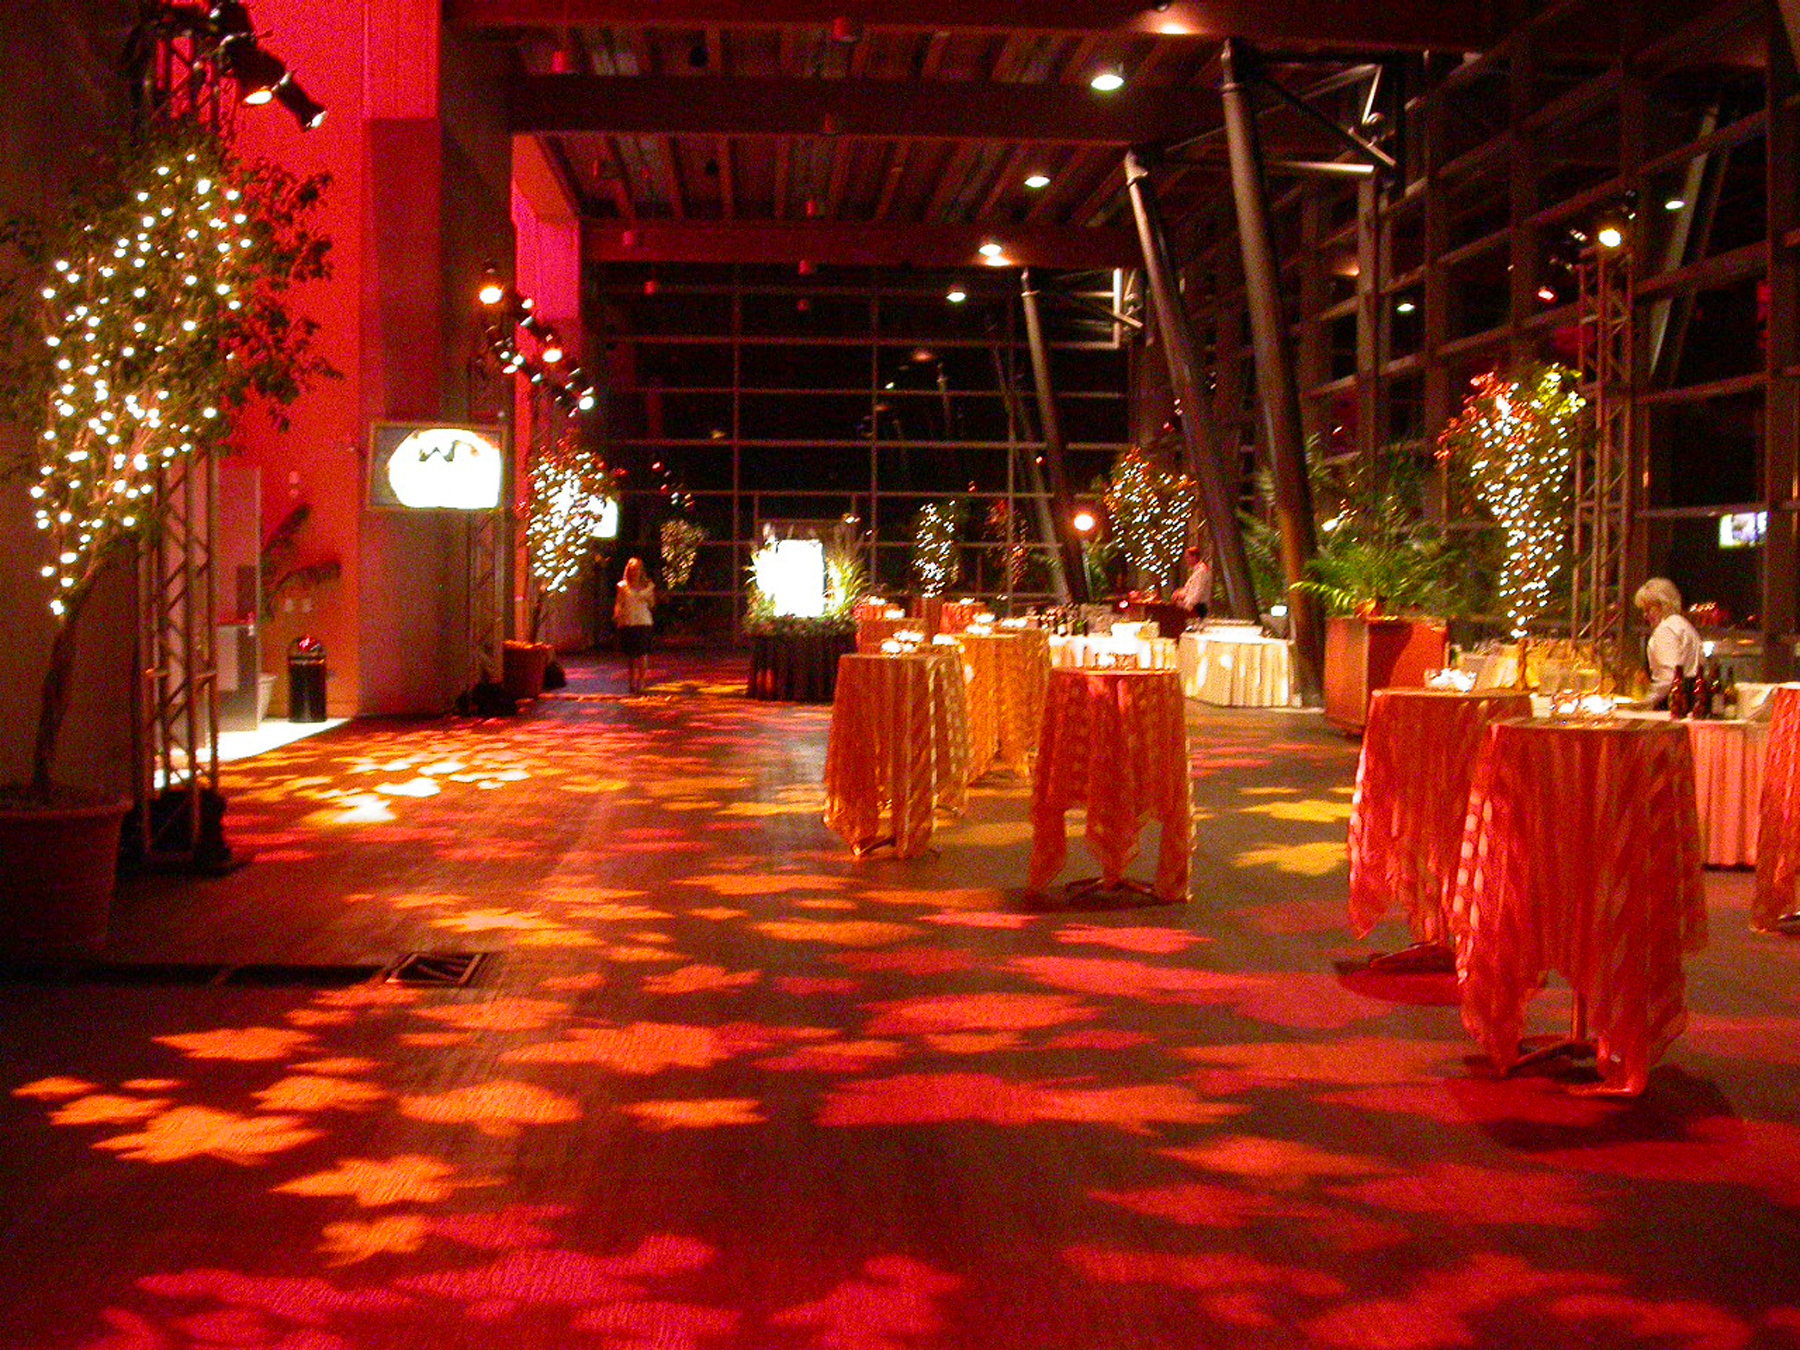 Make Your Themes Come To Life Simple Leaf Projections On The Floor Make This Autumn Reception